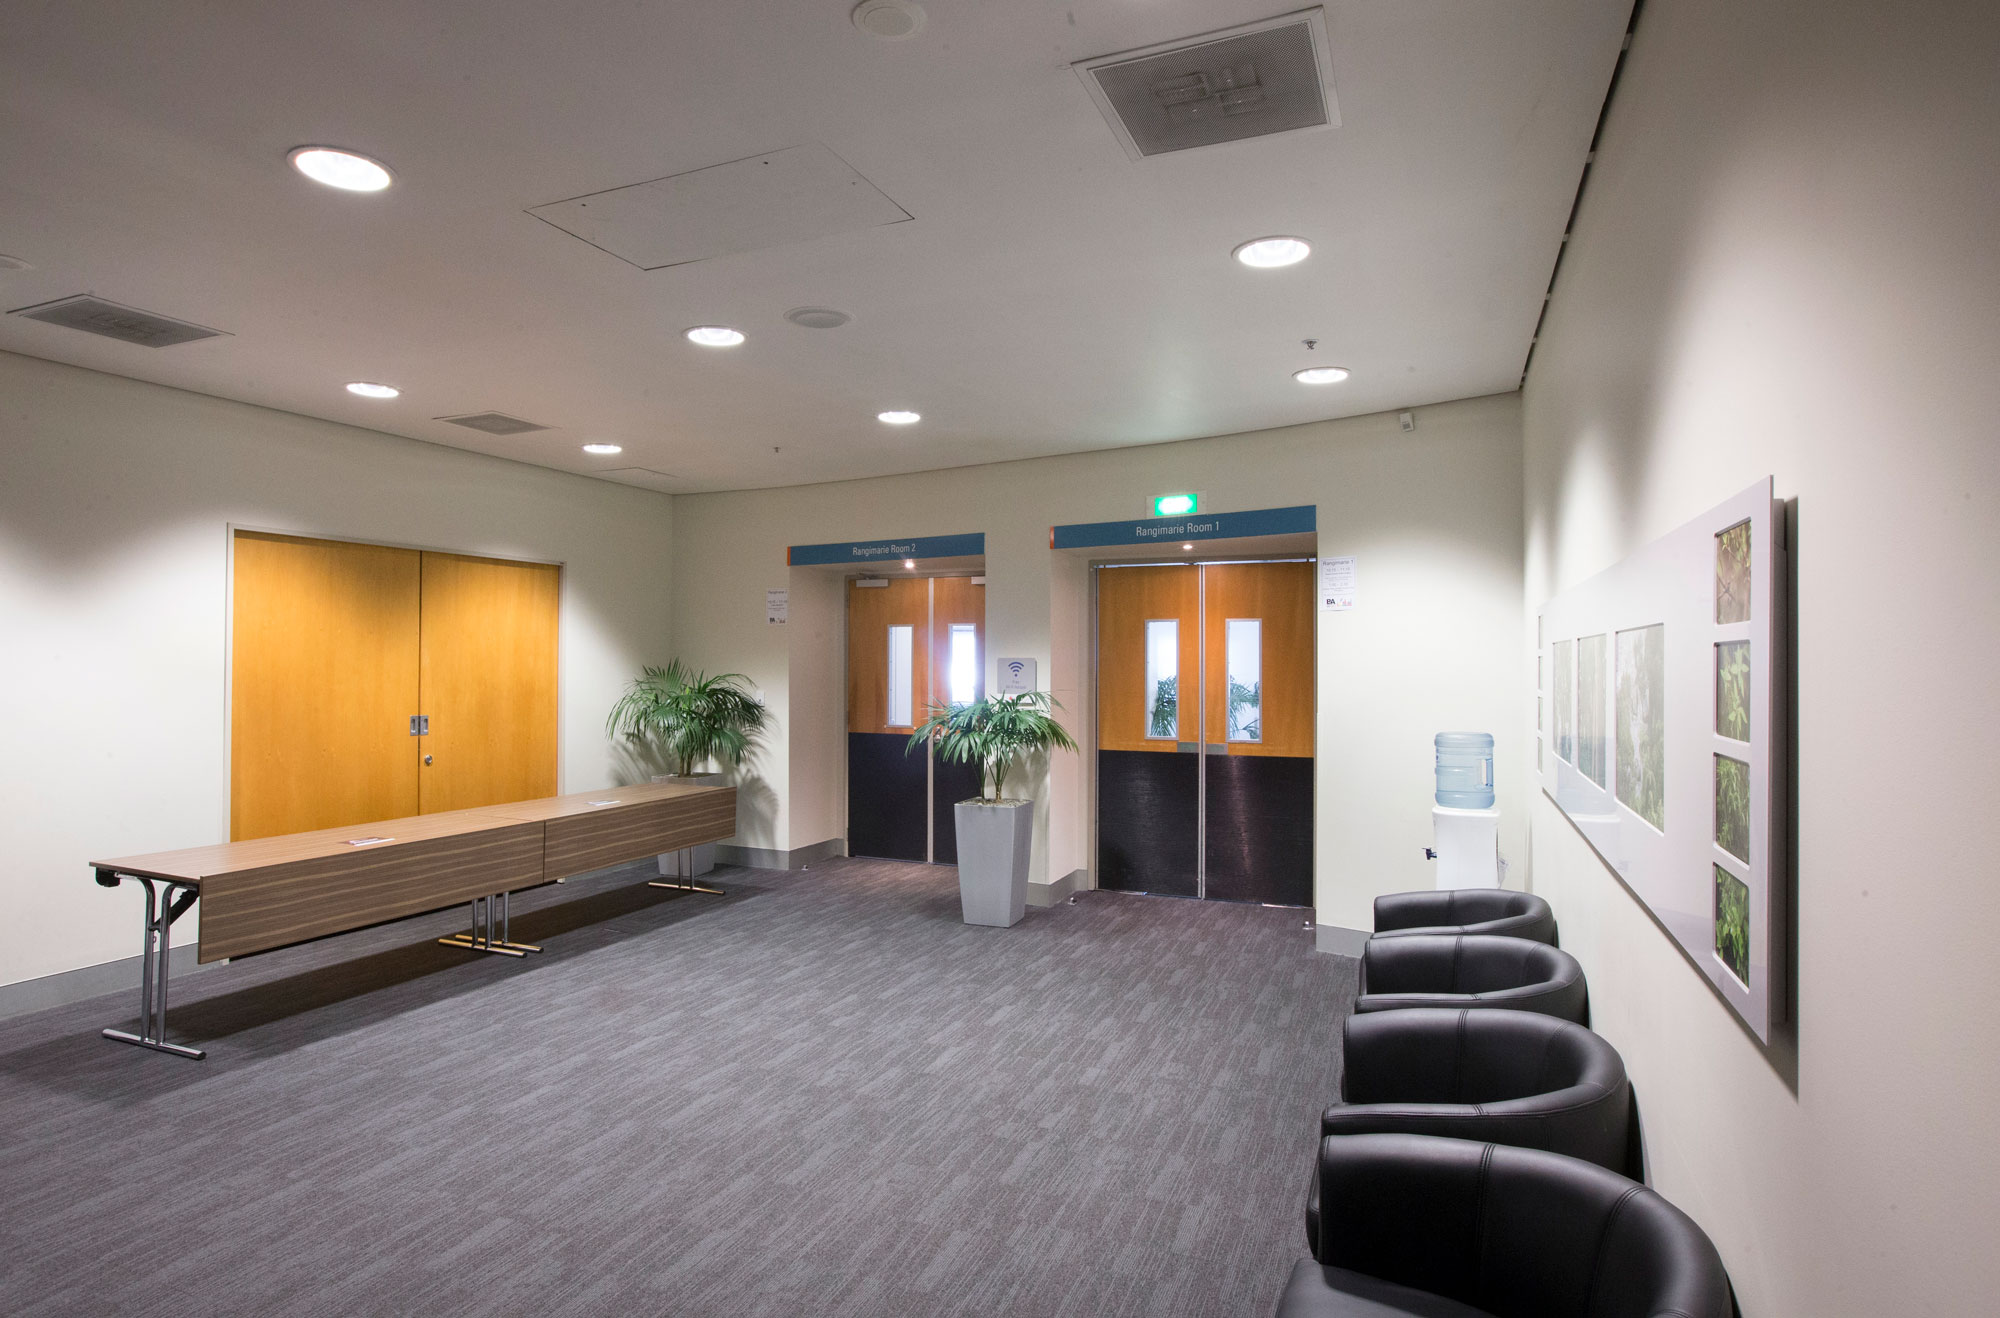 The reception area between the three meeting rooms